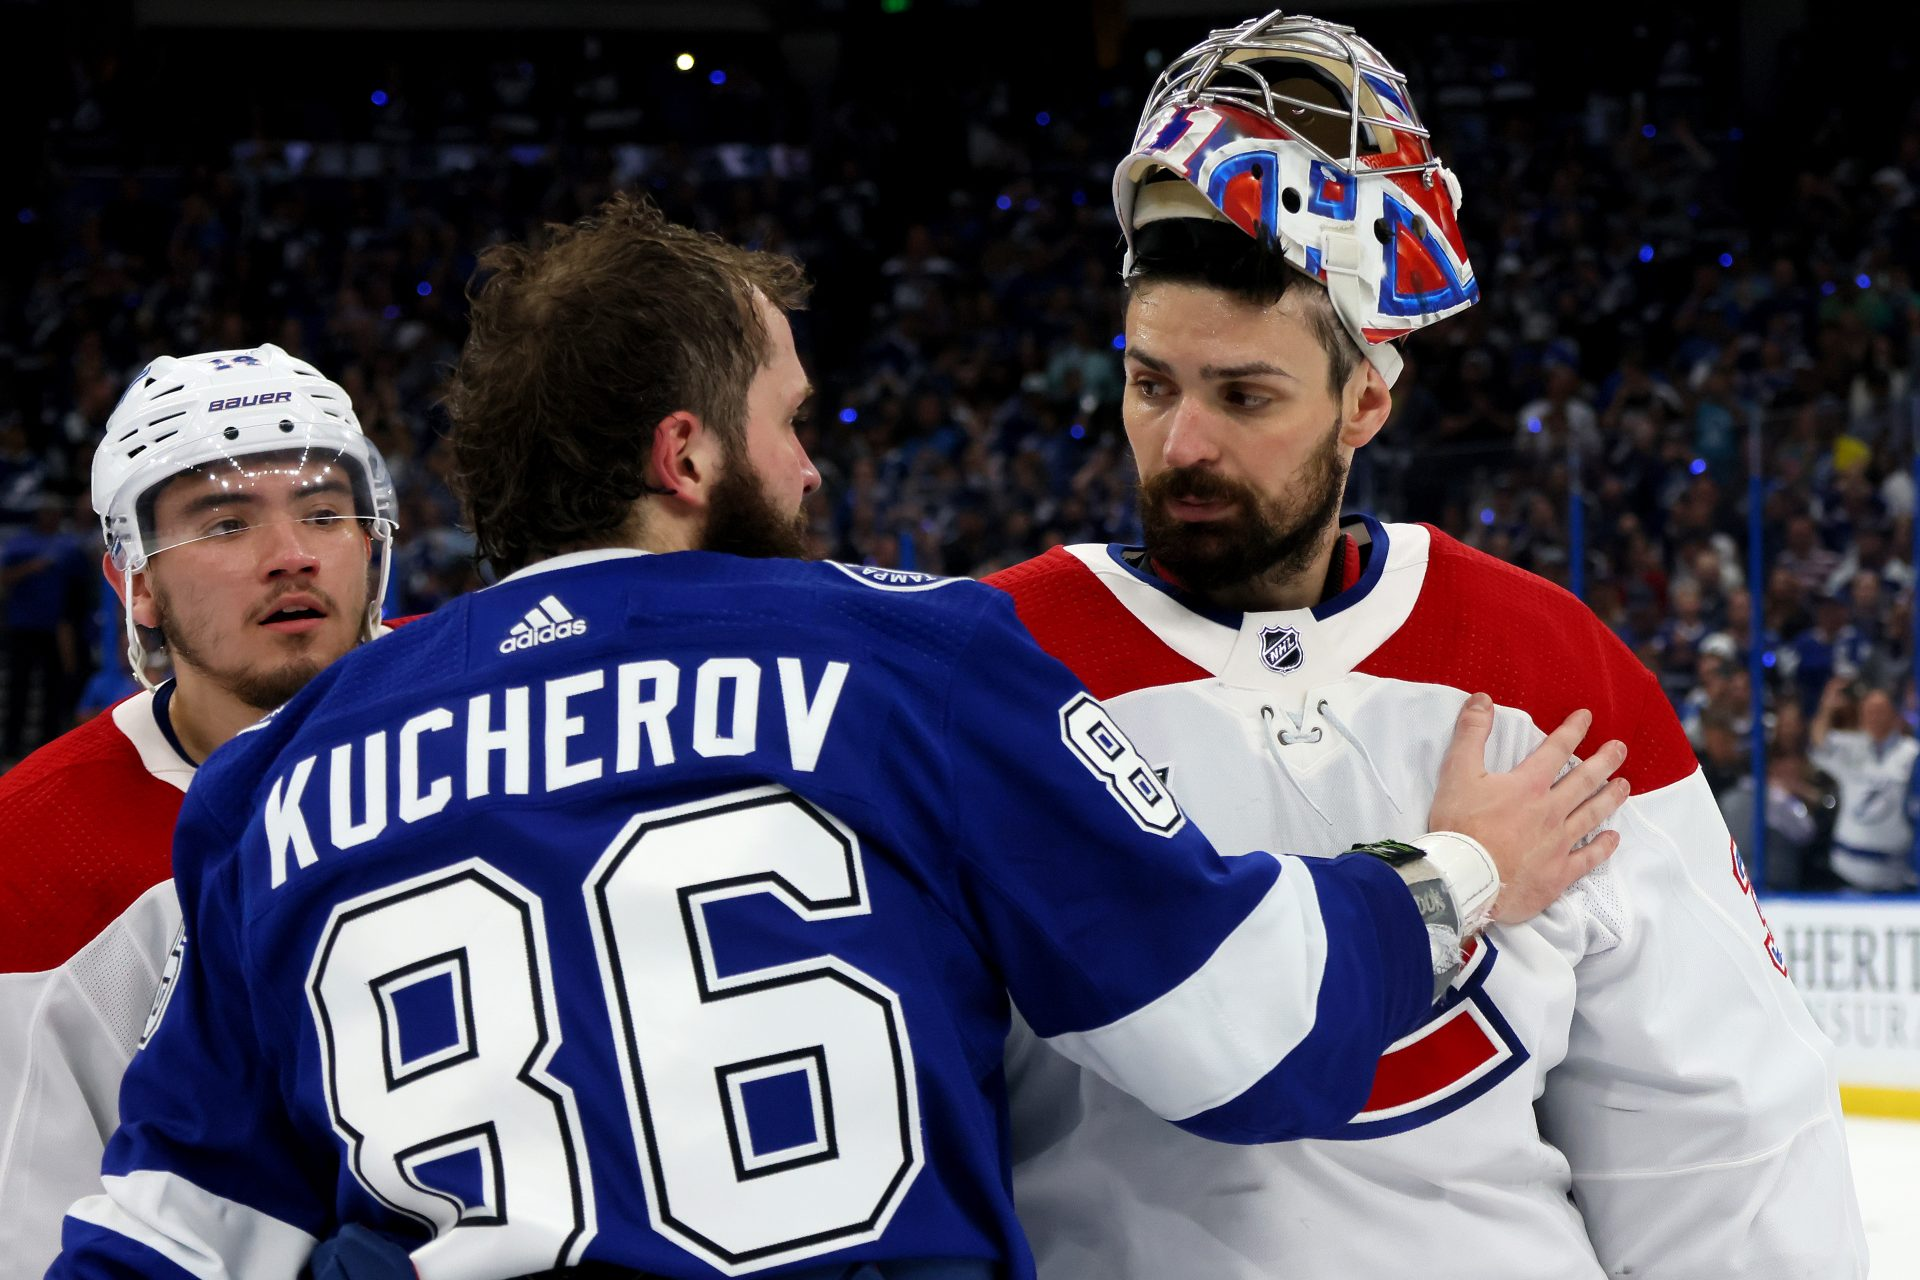 Montreal Canadiens lose to Tampa Bay but still have record of 24 Stanley Cup wins